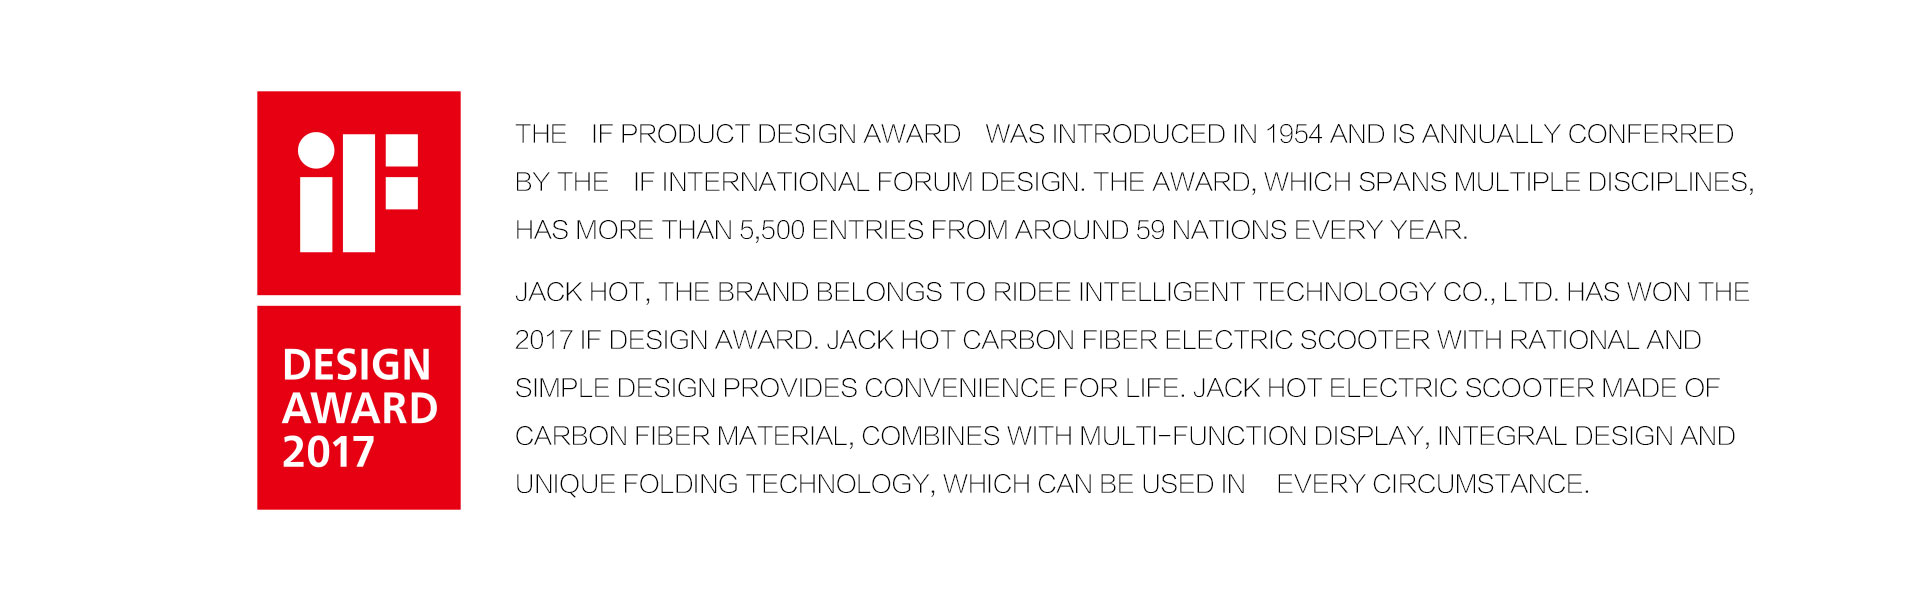 JACK HOT iF design award 2017